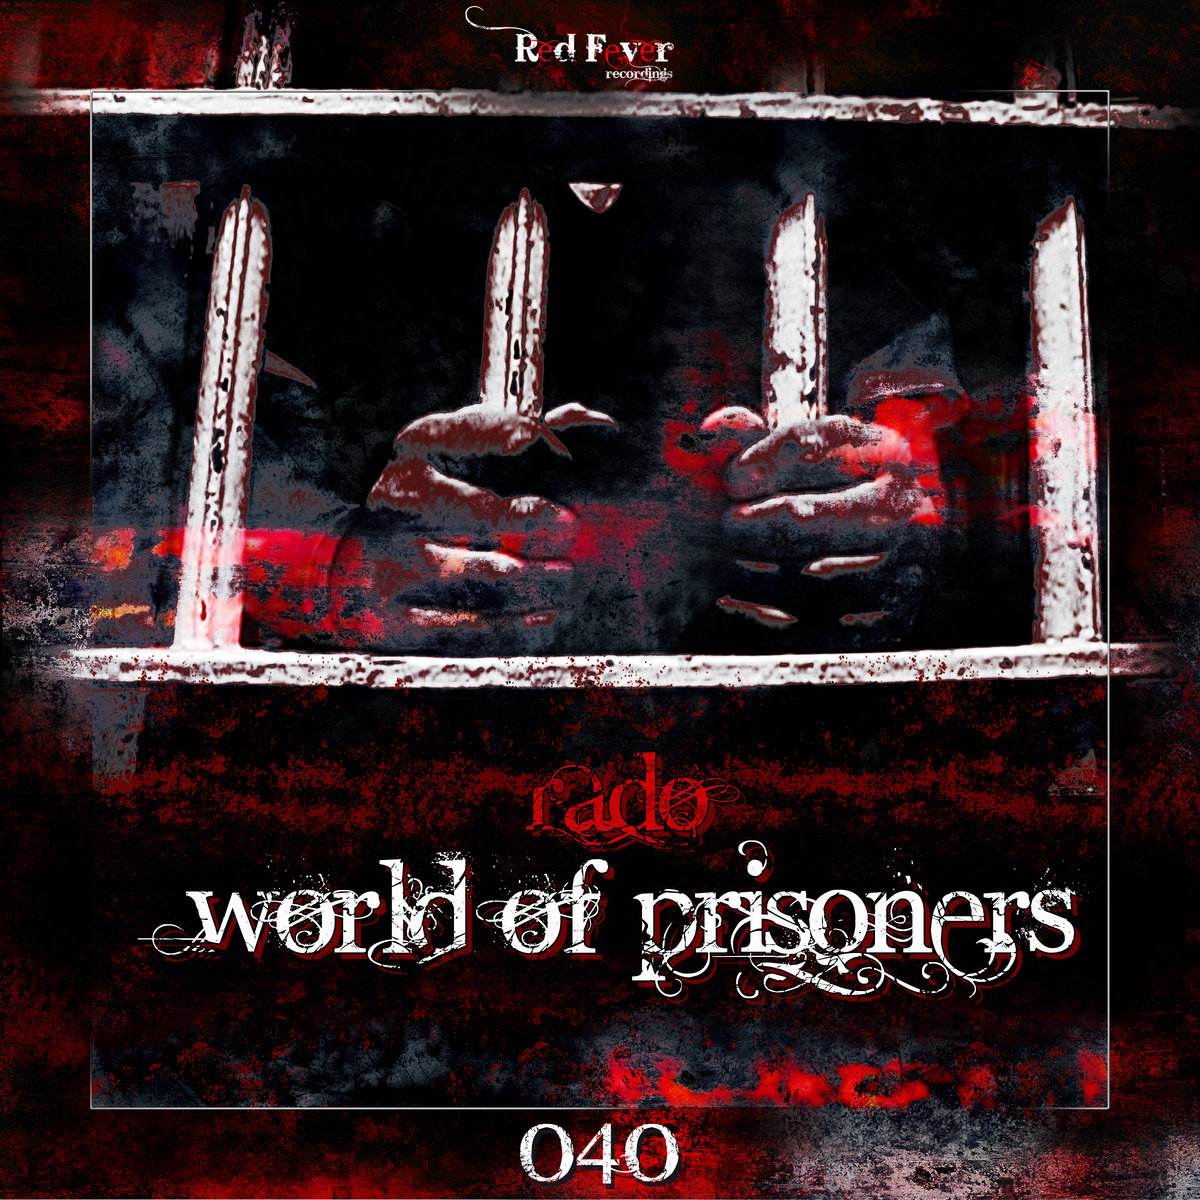 Rado feat. MC ADK - Bad Sensations @ 'World Of Prisoners' album (electronic, adk)